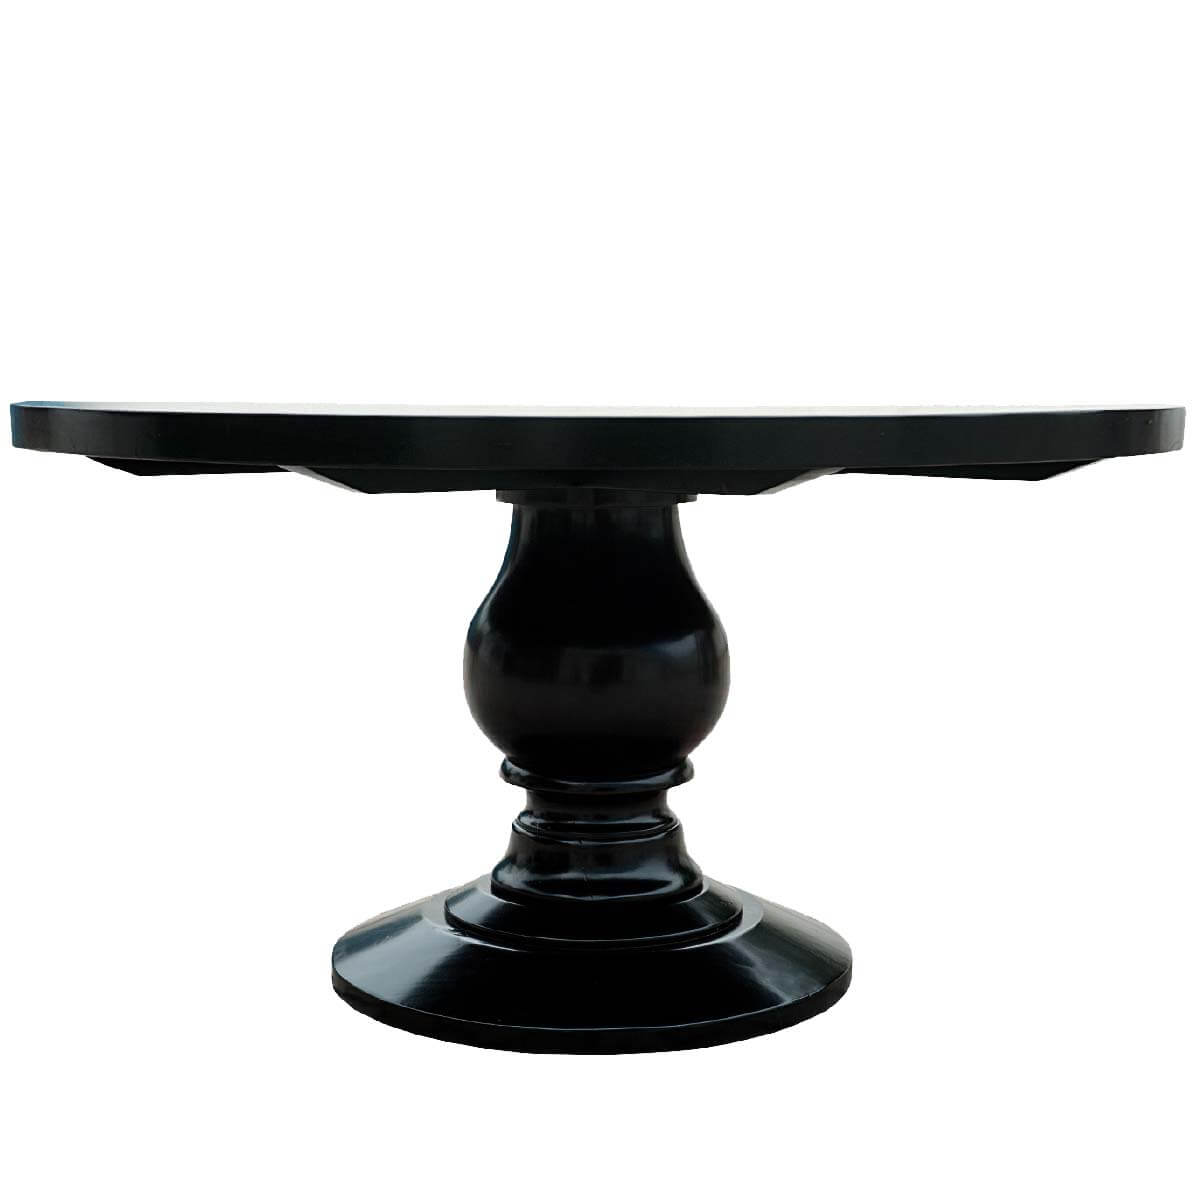 Dining Tables Sutton Black Baluster Pedestal Traditional Wood Round